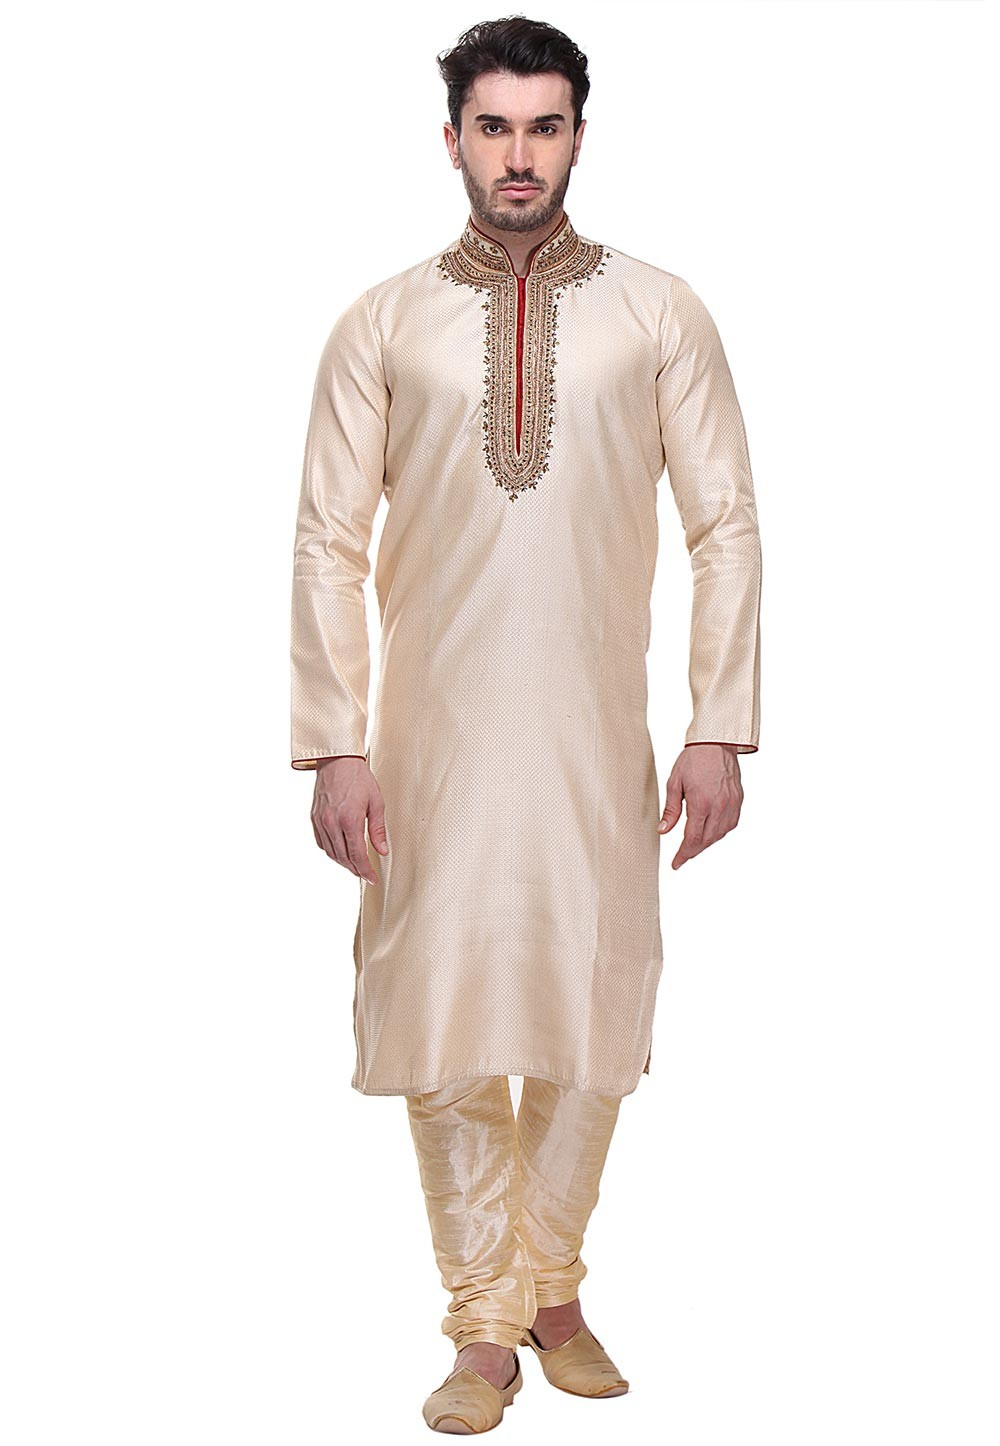 Golden Color Indian Designer Kurta Pajama.